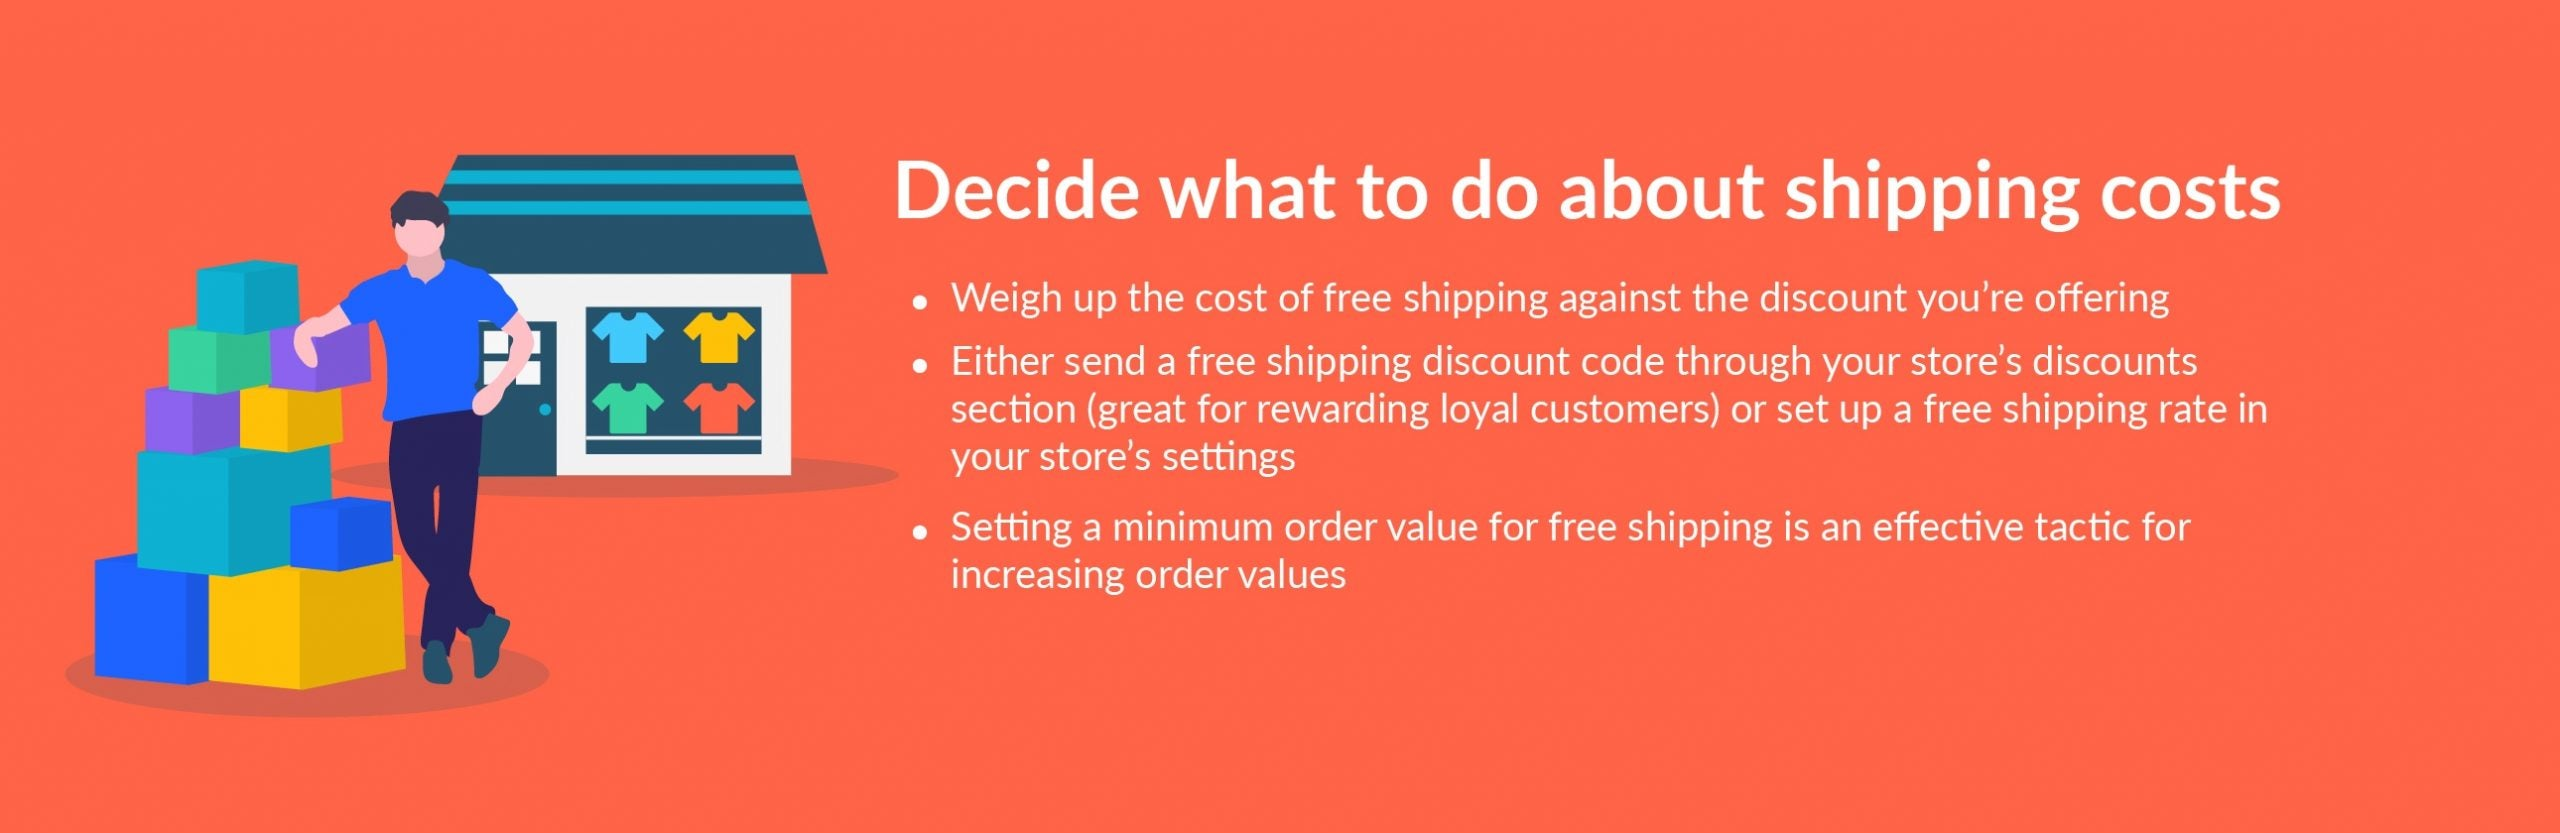 black friday tip decide on shipping costs